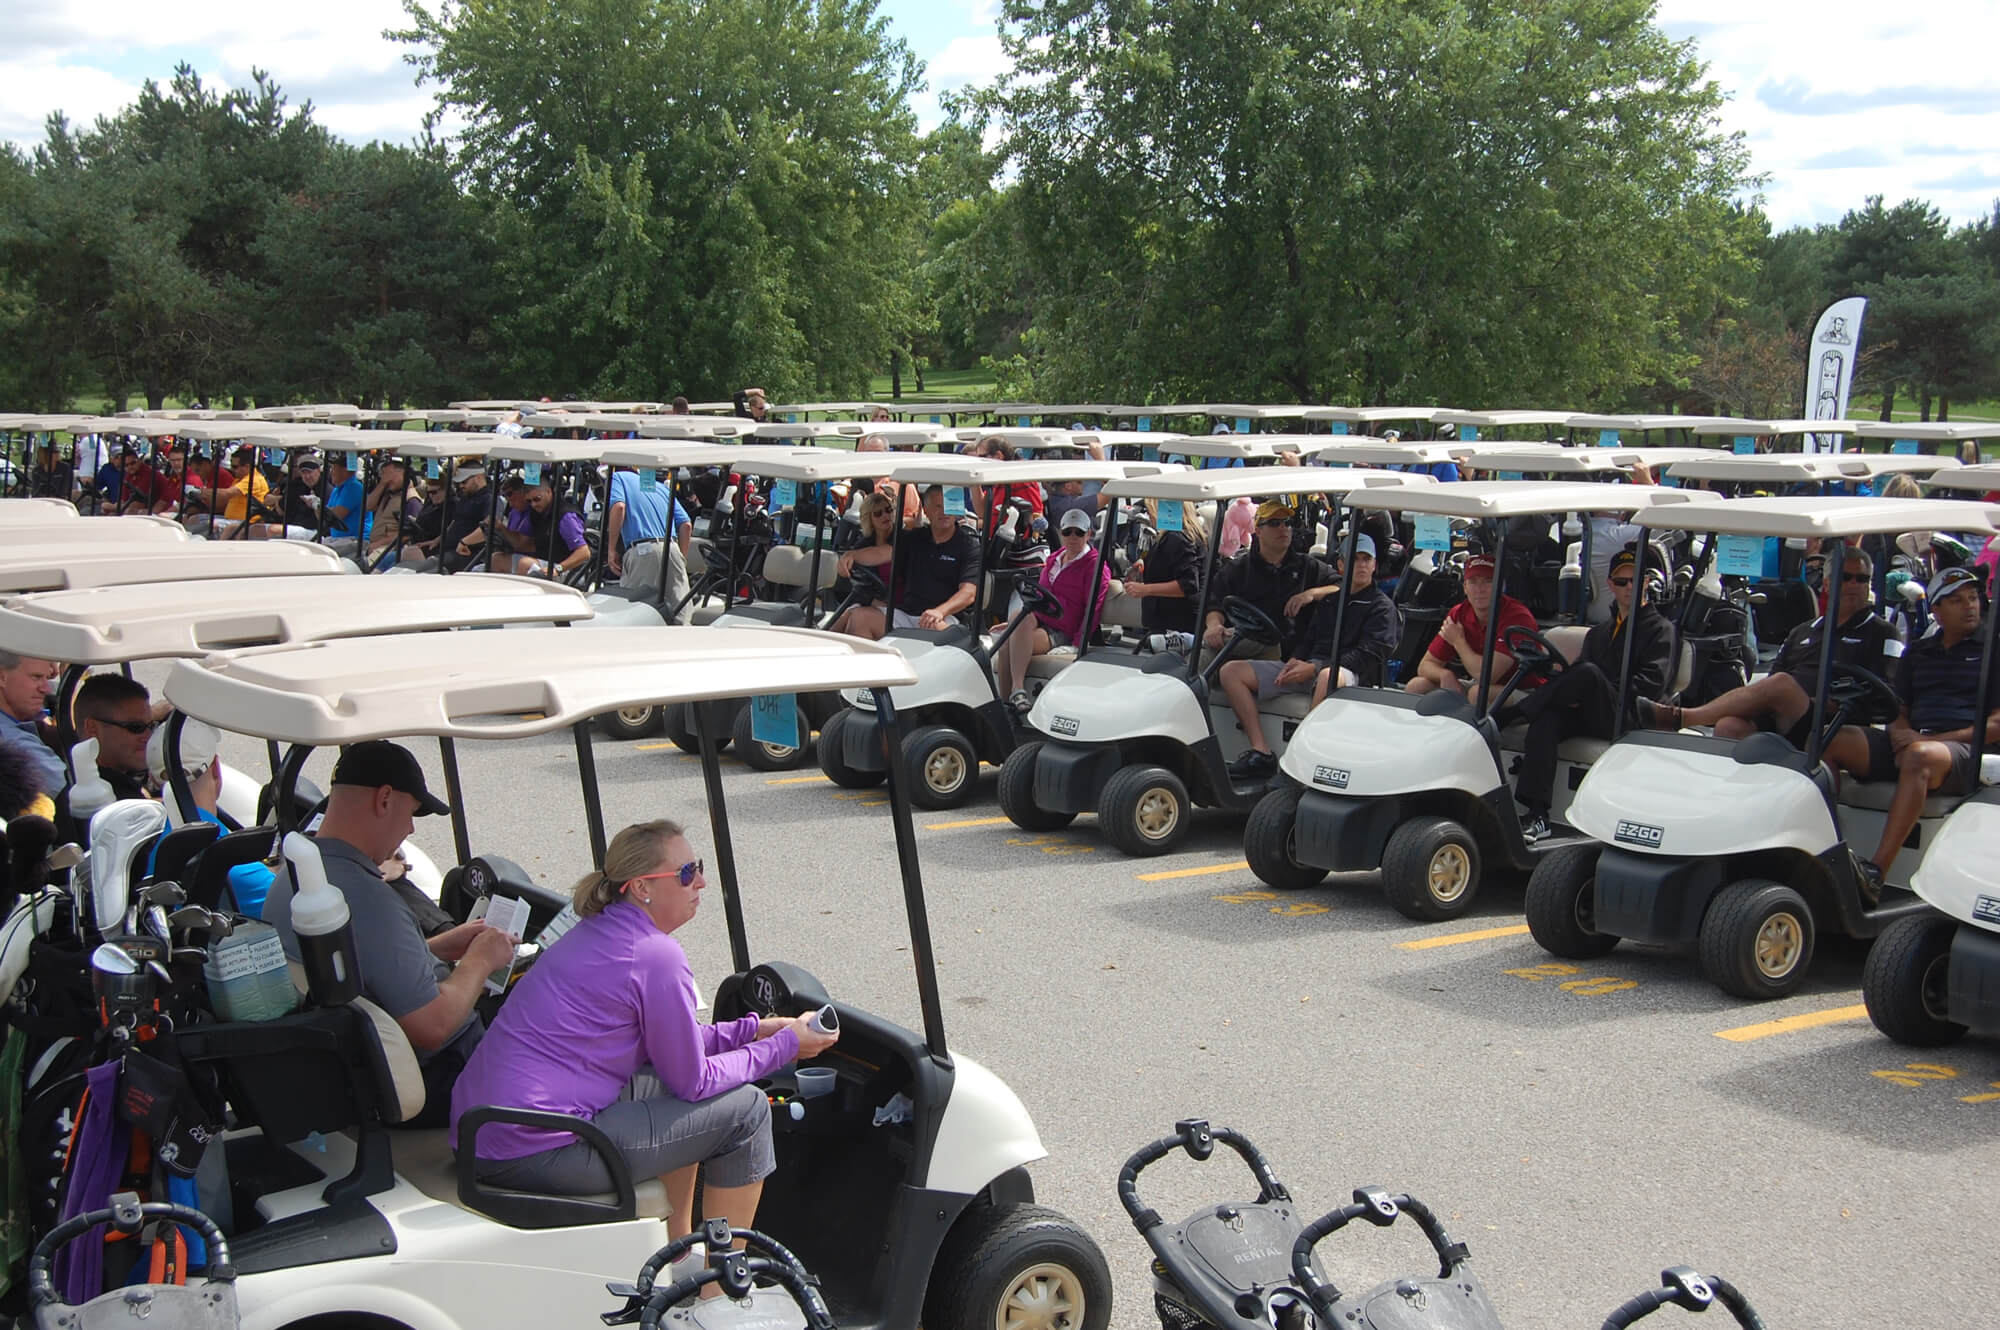 Golf carts are lined up in preparation for an event.